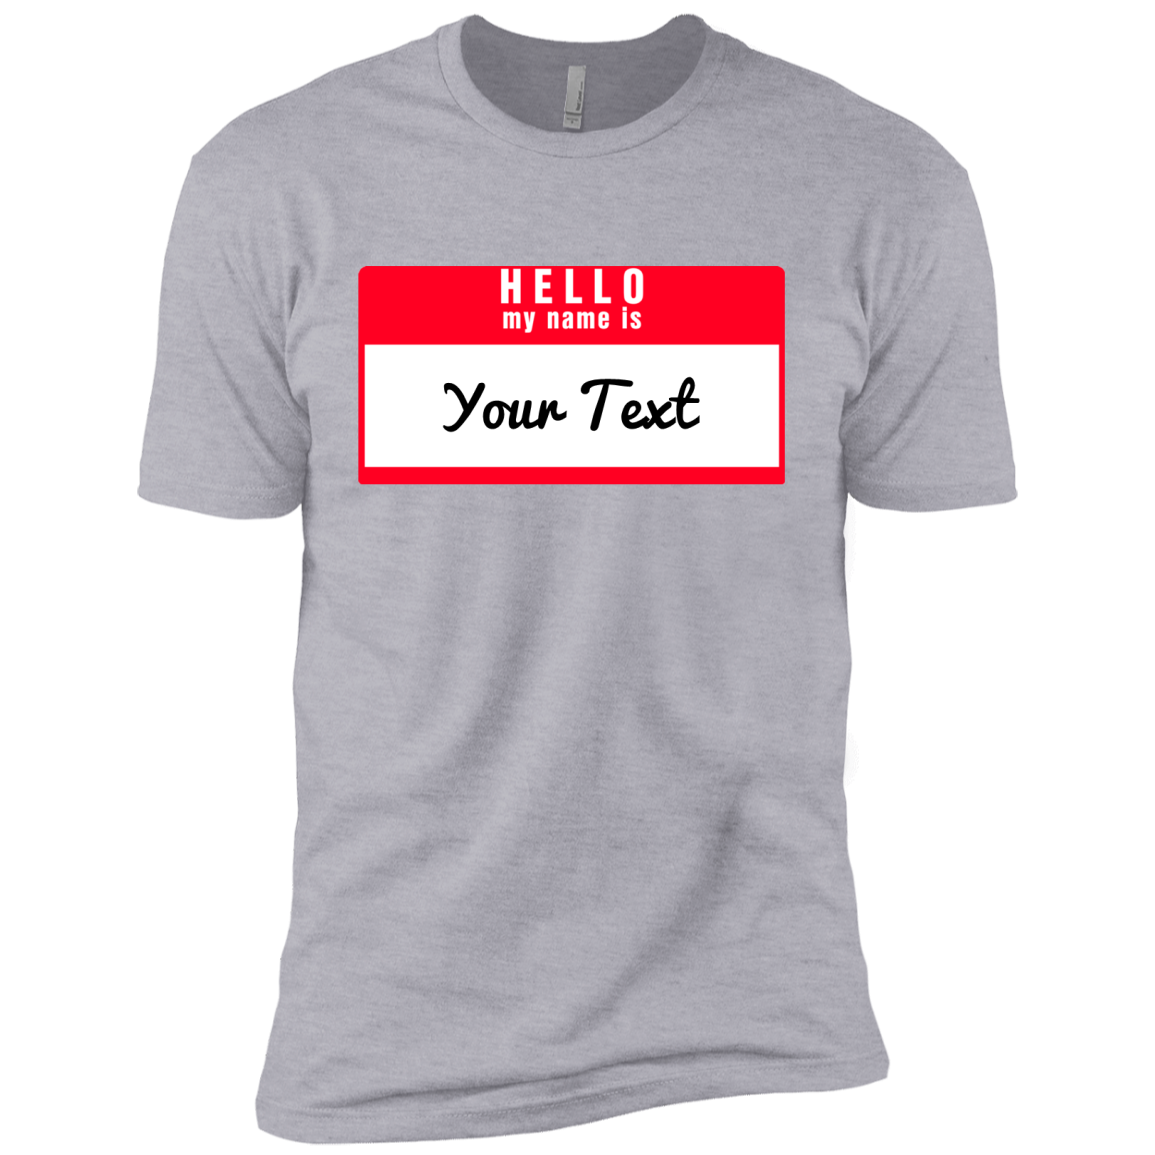 Hello My Name Is:  Premium Short Sleeve T-Shirt